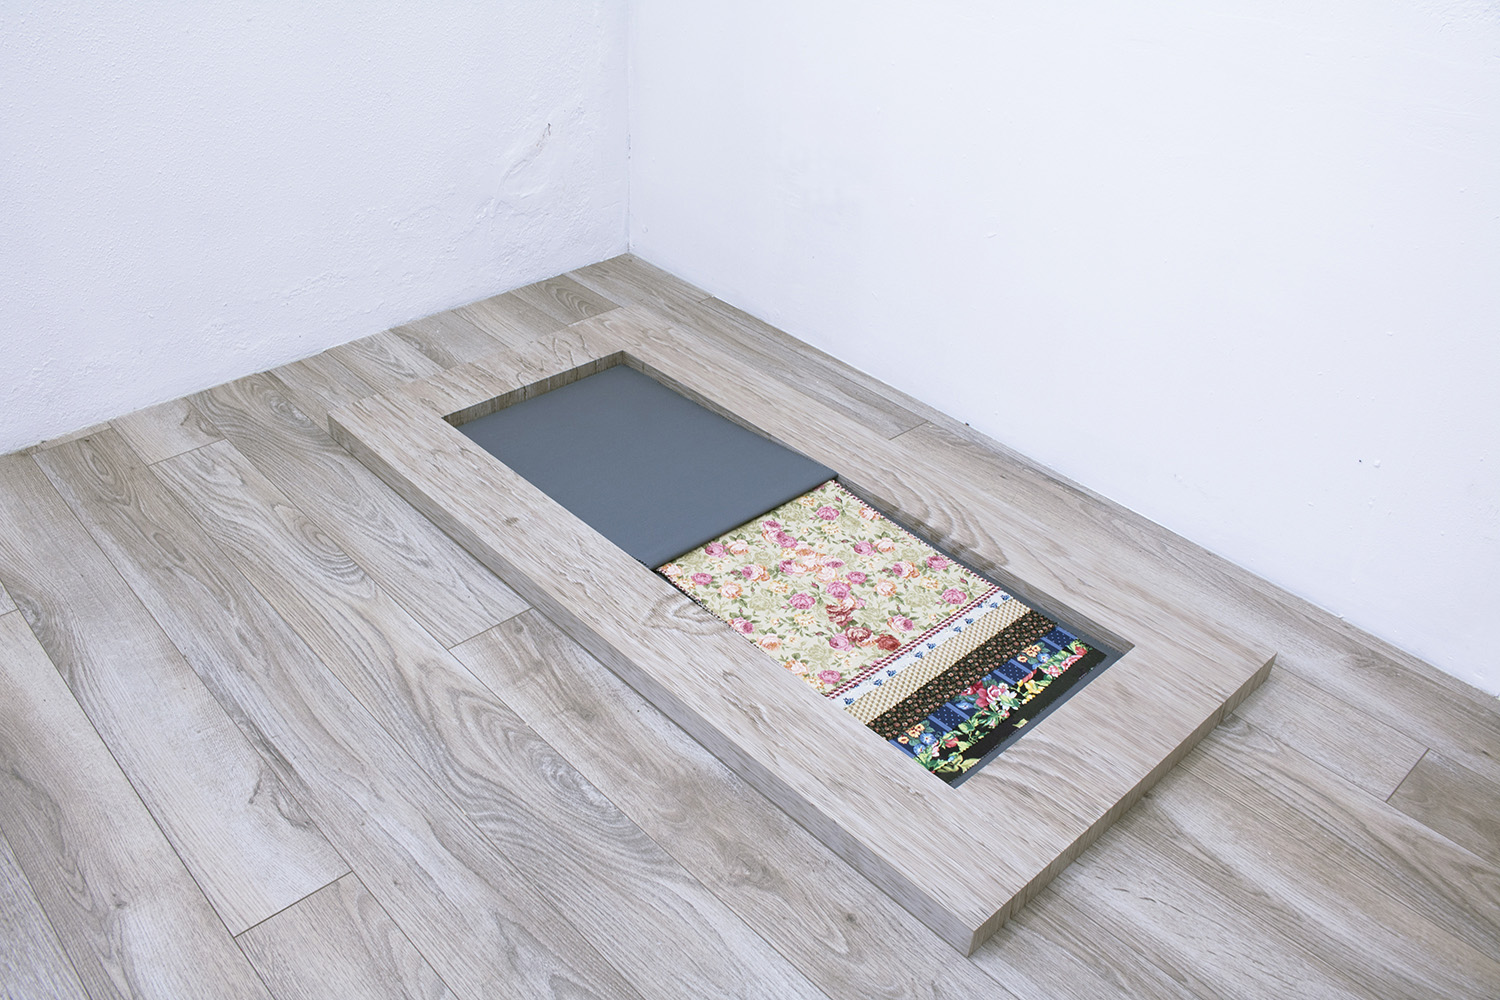 Floor Paintings , 2018 Acrylic on MDF on floor   Faulty Samples IV , 2014–2018 Fabric collages and acrylic on found fabric in bound book